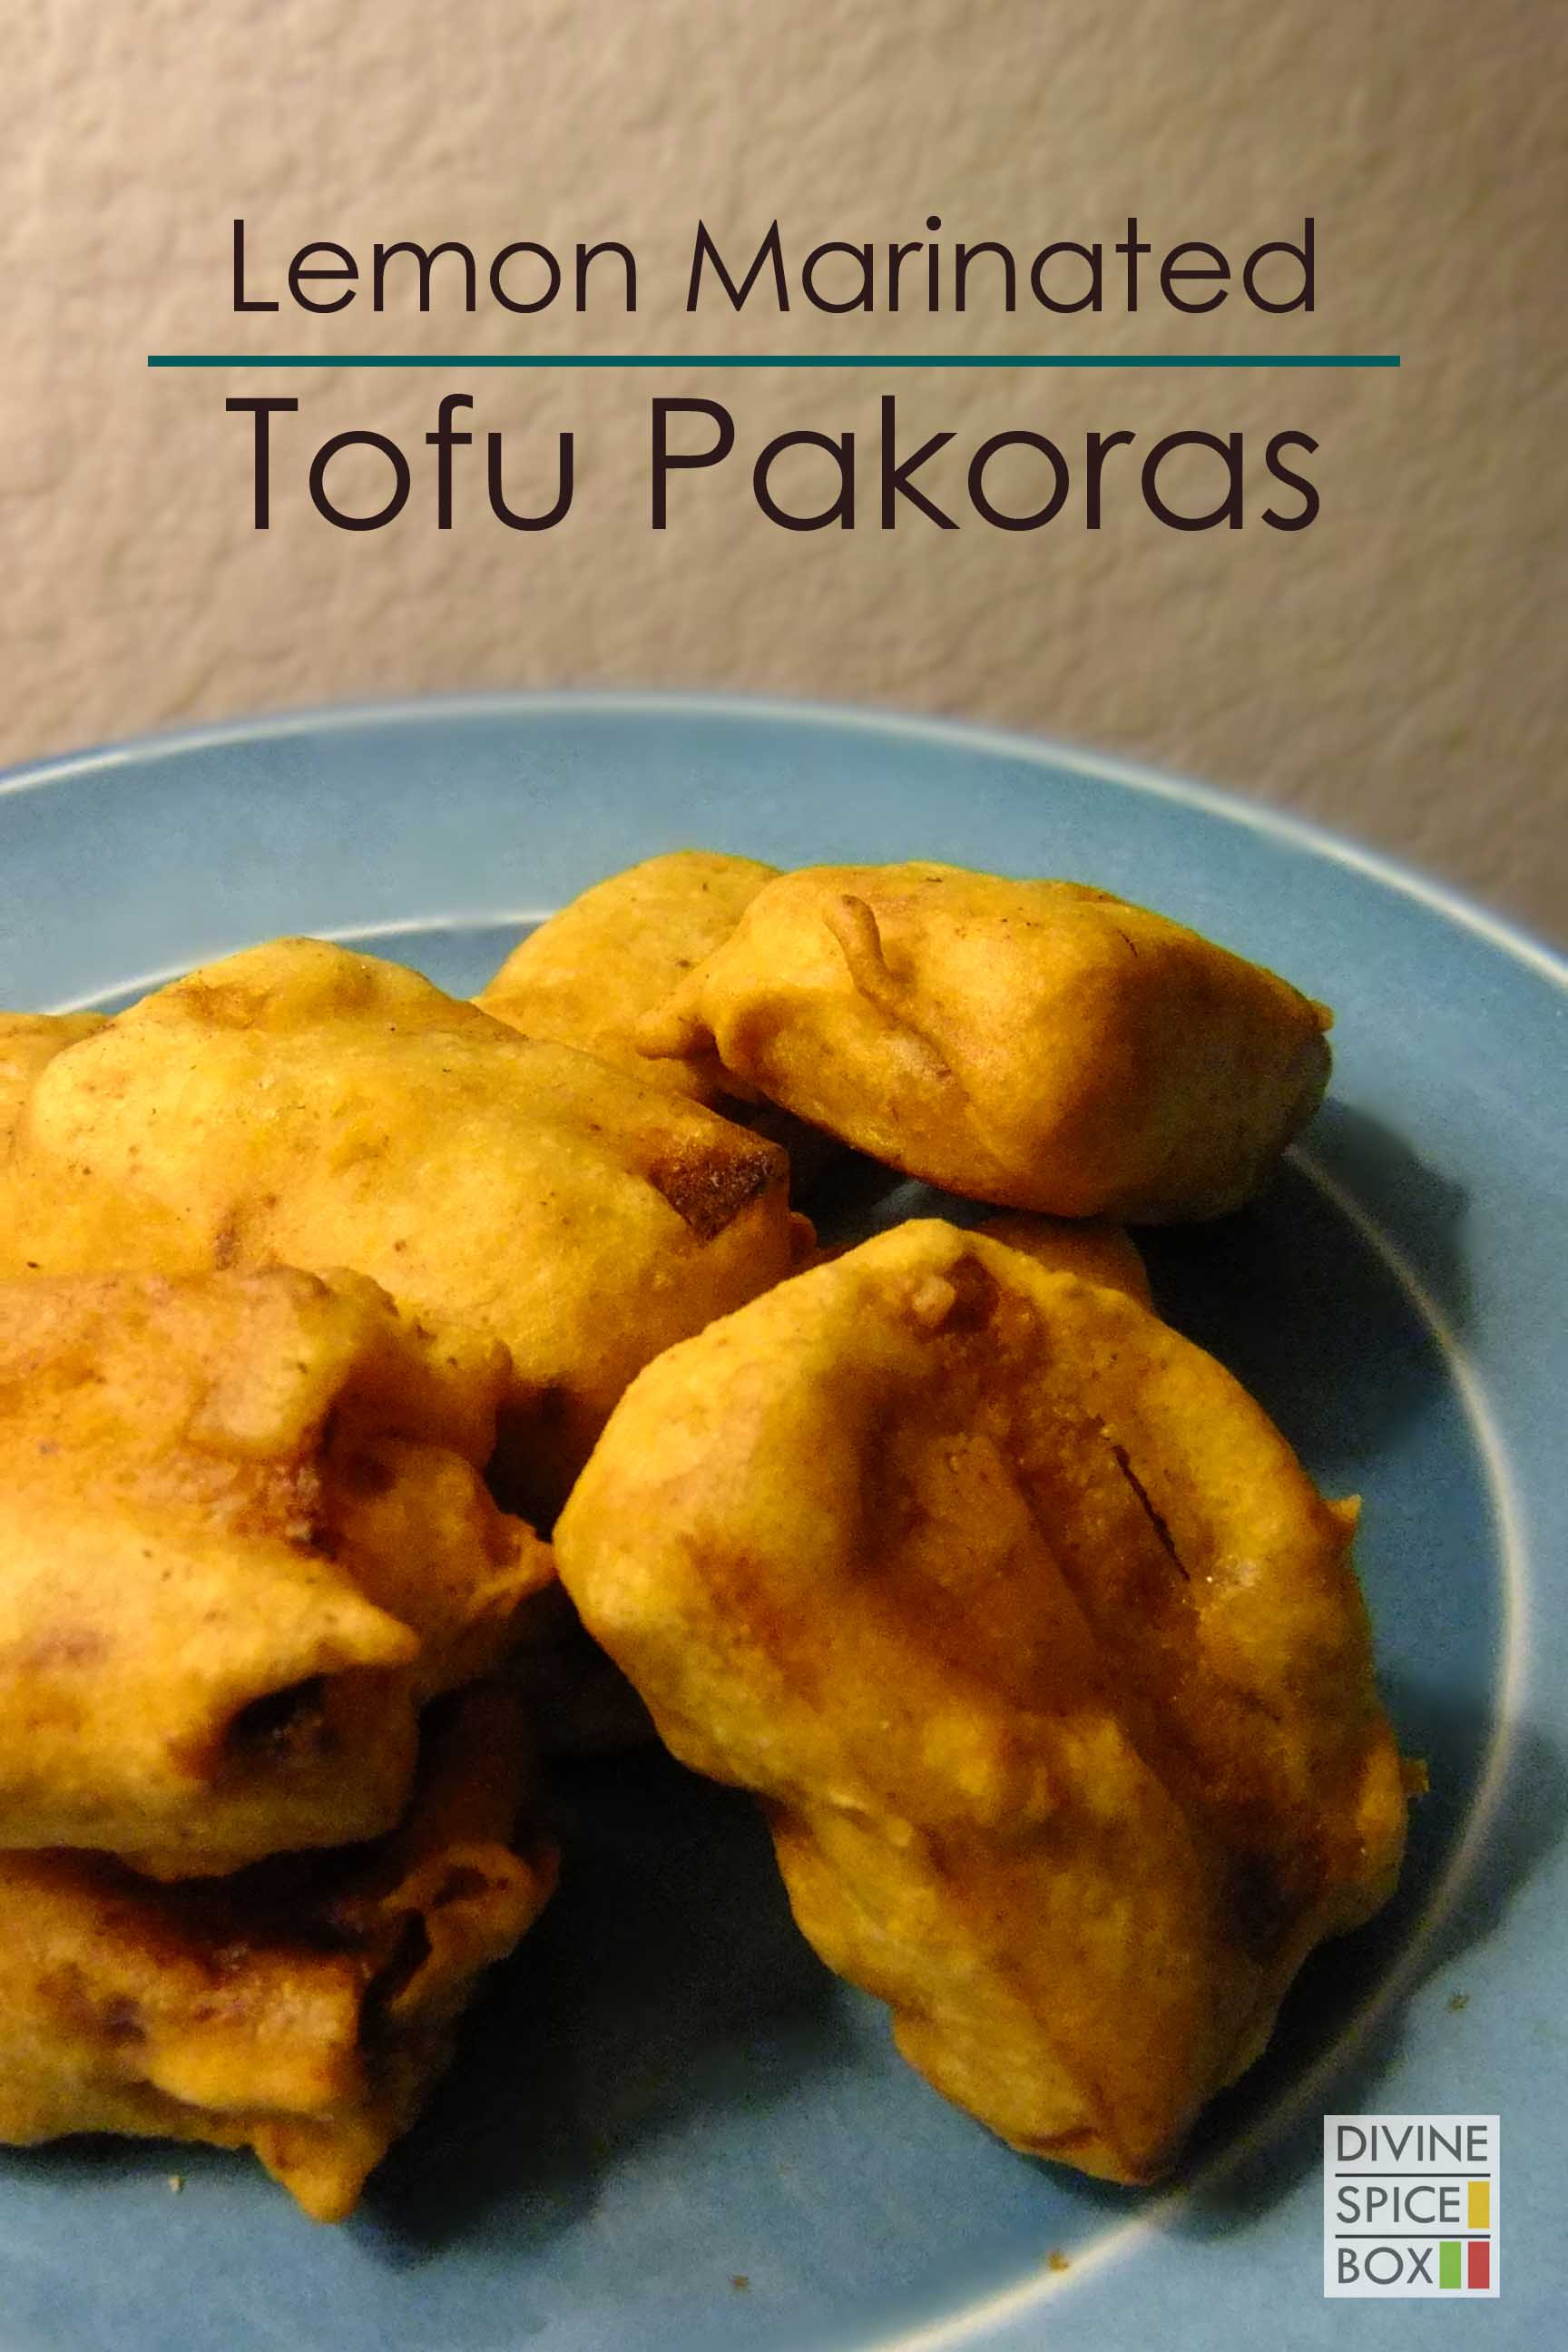 lemon marinated tofu pakoras copy